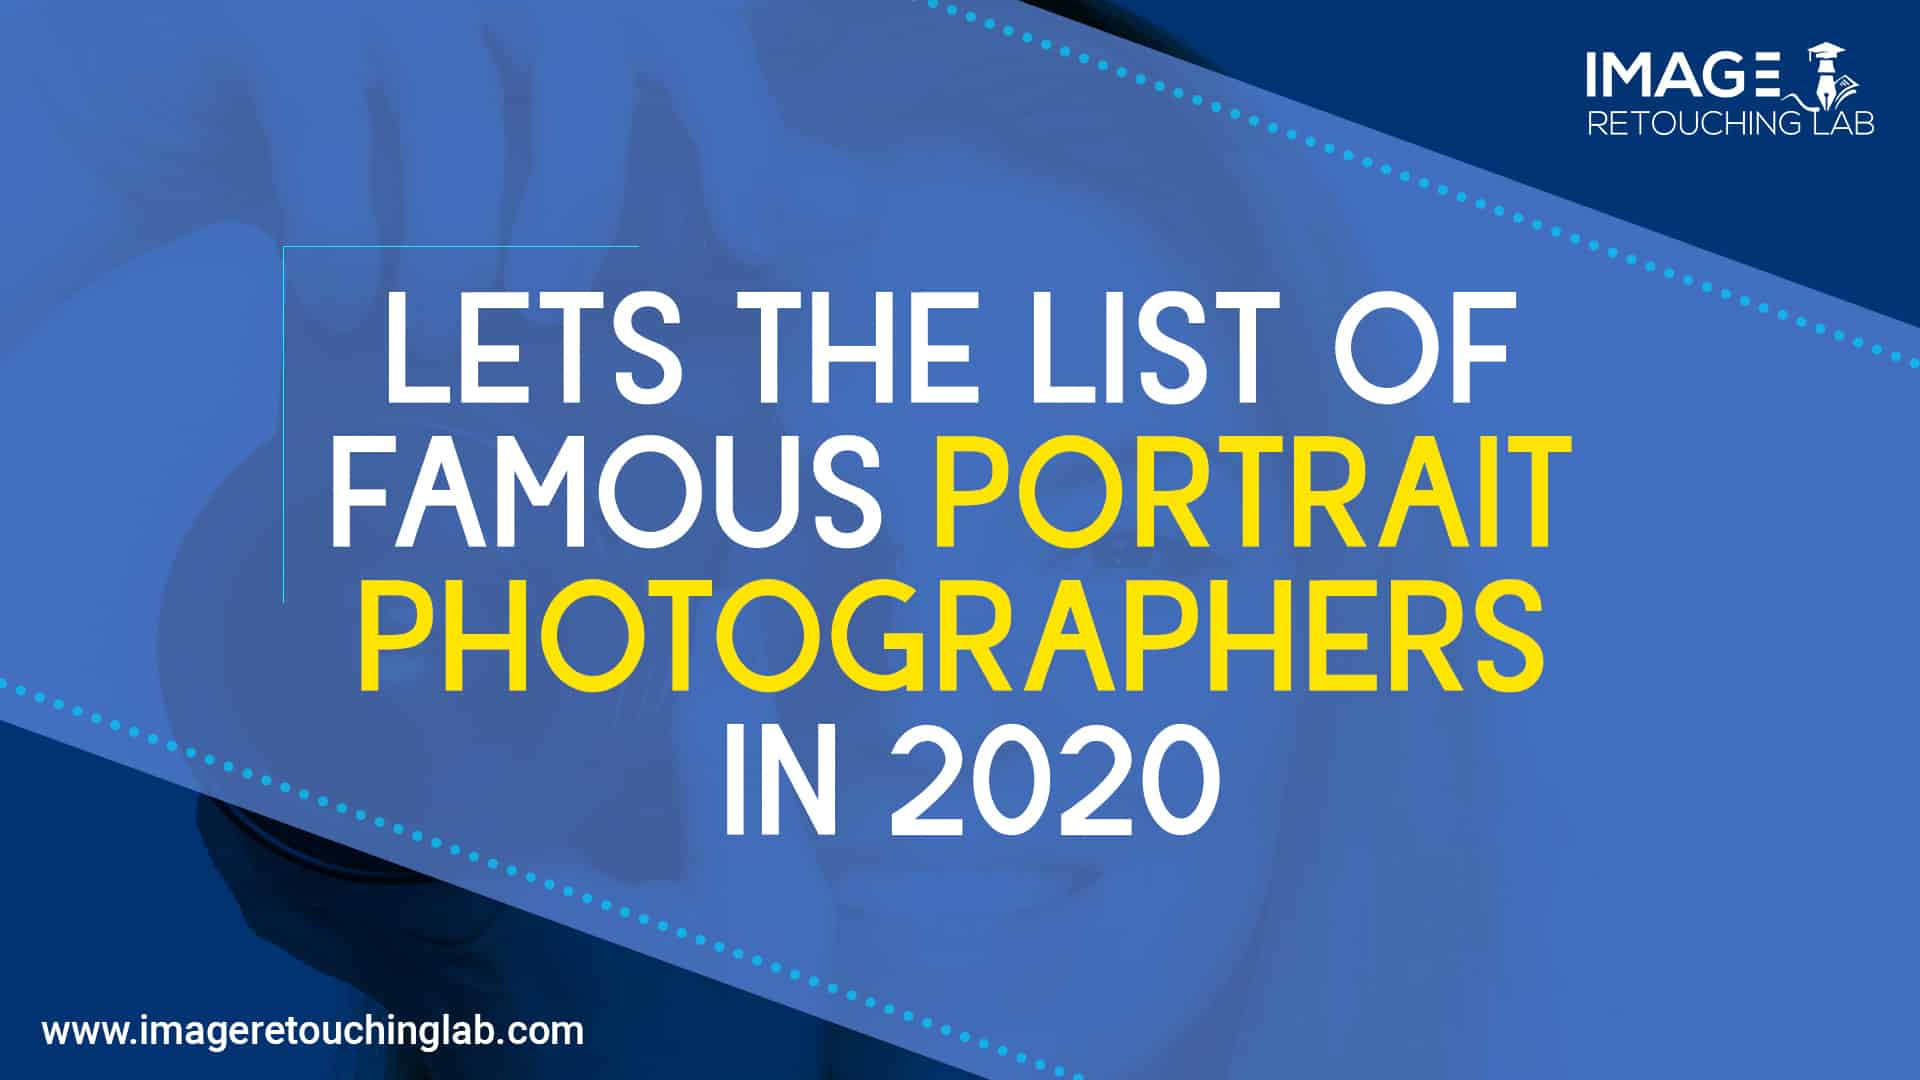 Lets The List Of Famous Portrait Photographers In 2020